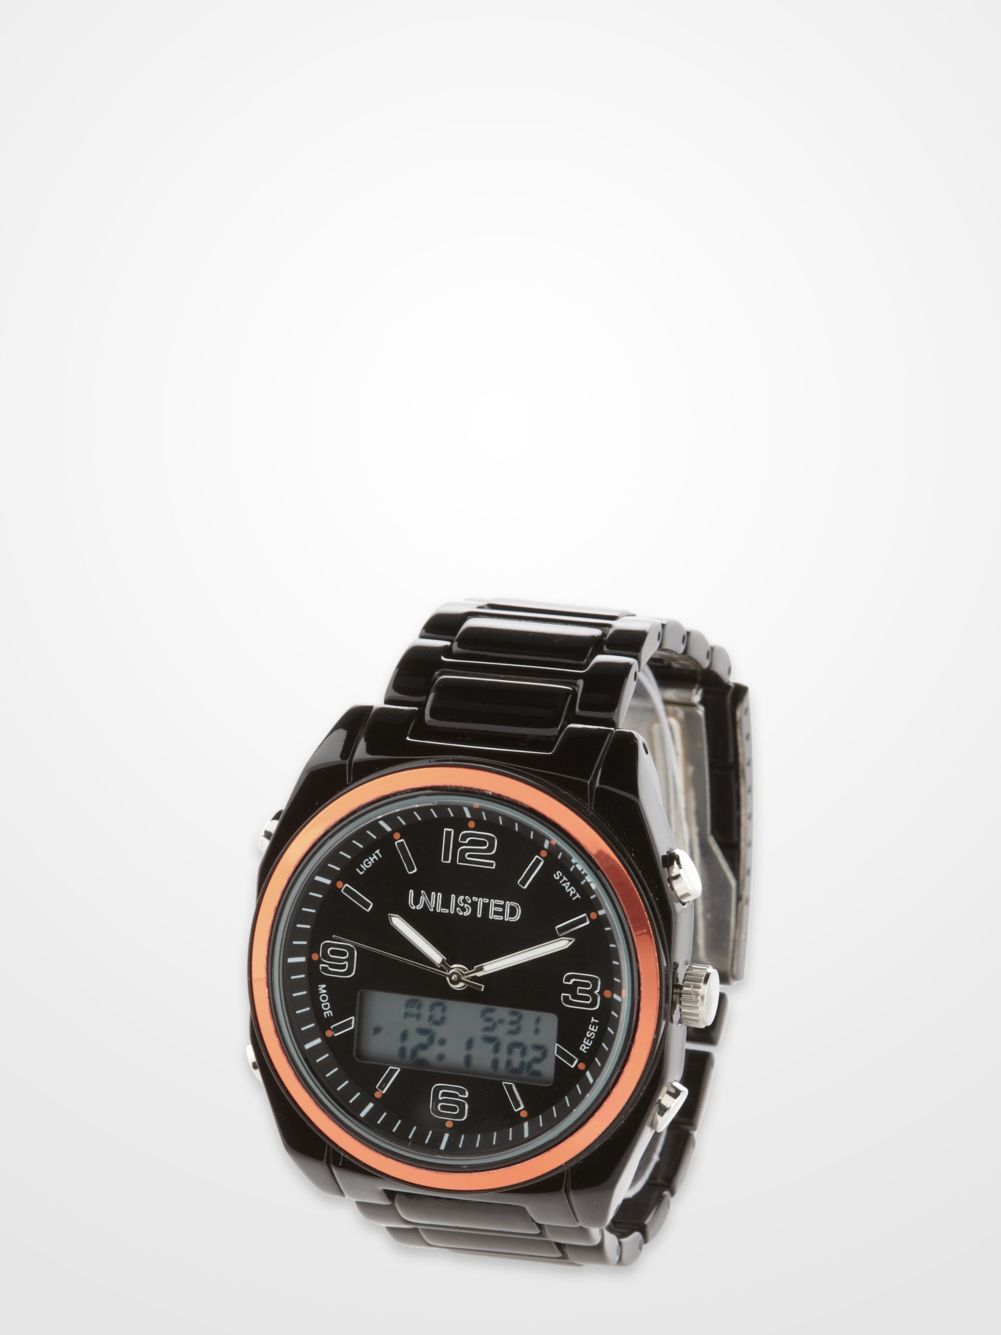 kenneth cole unlisted watch manual